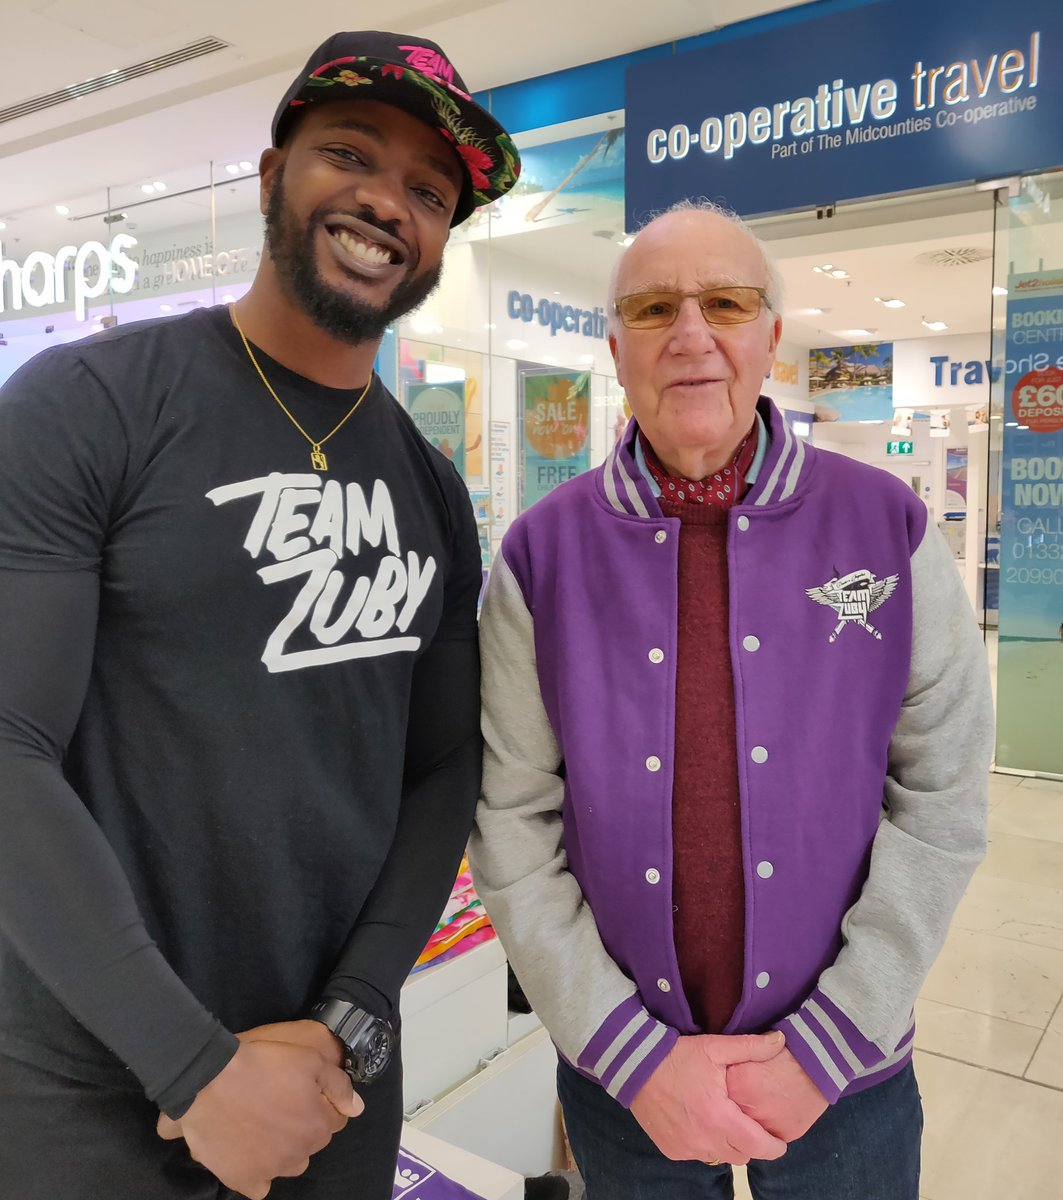 Dave loved this jacket but thought he might be too old to rock it.  He's 82.  I told him he'd actually be the coolest 82 year old in the city.   He bought it.   #BeLikeDave #TeamZuby<br>http://pic.twitter.com/QOsTORJYnI